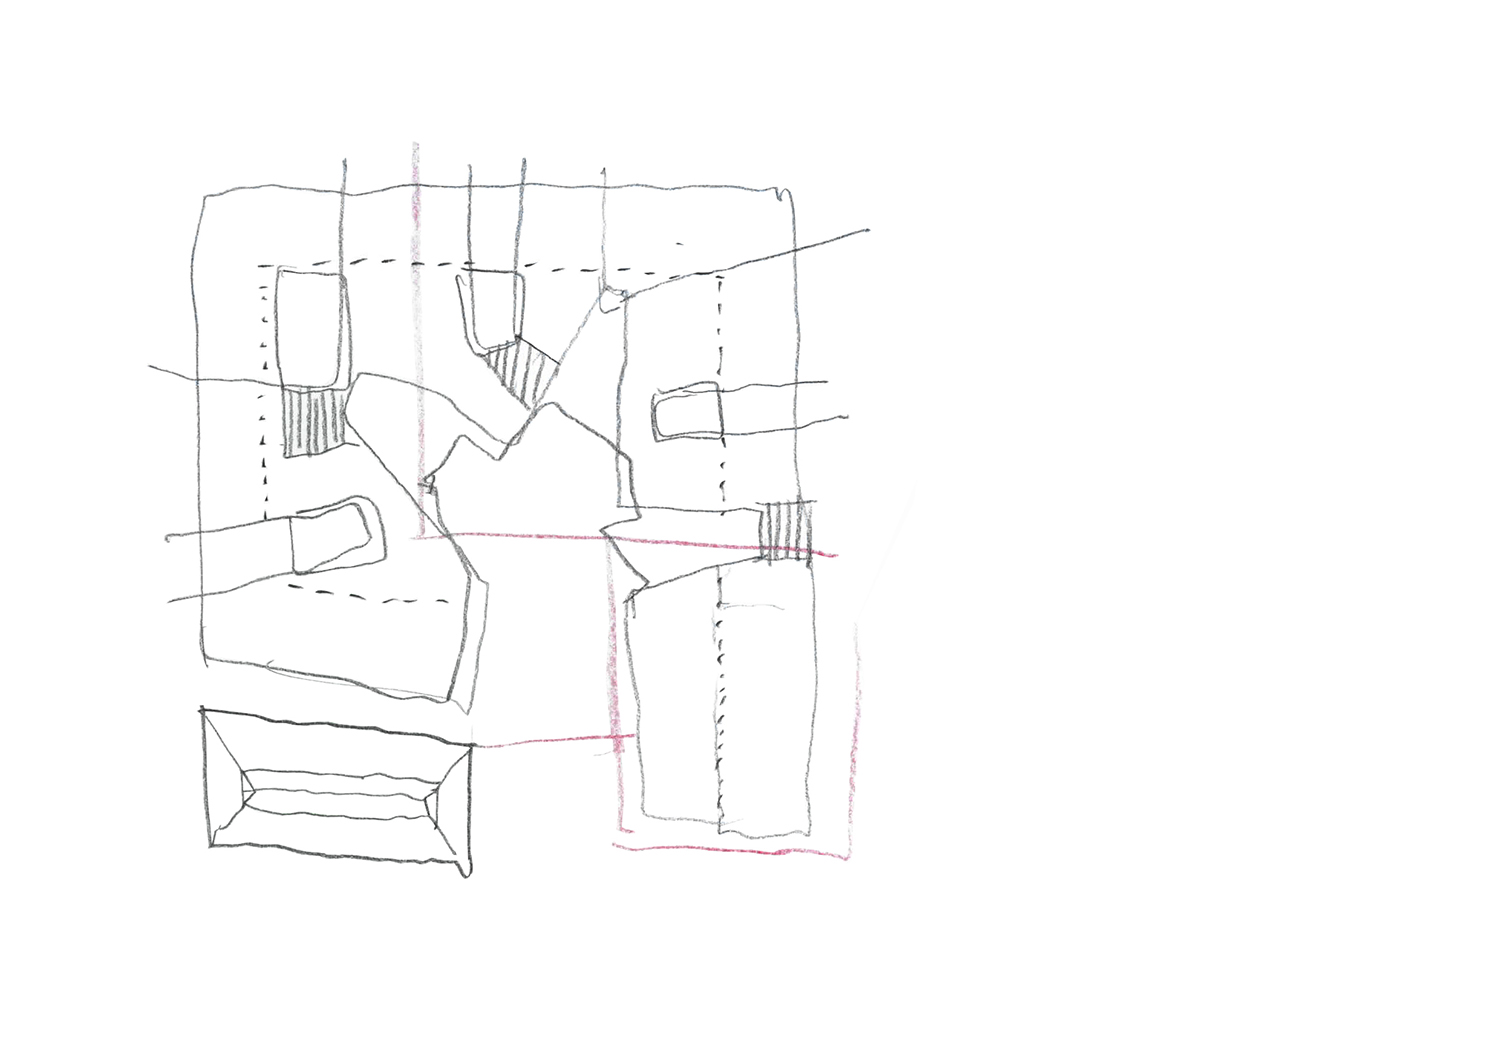 plan of the project sketch }